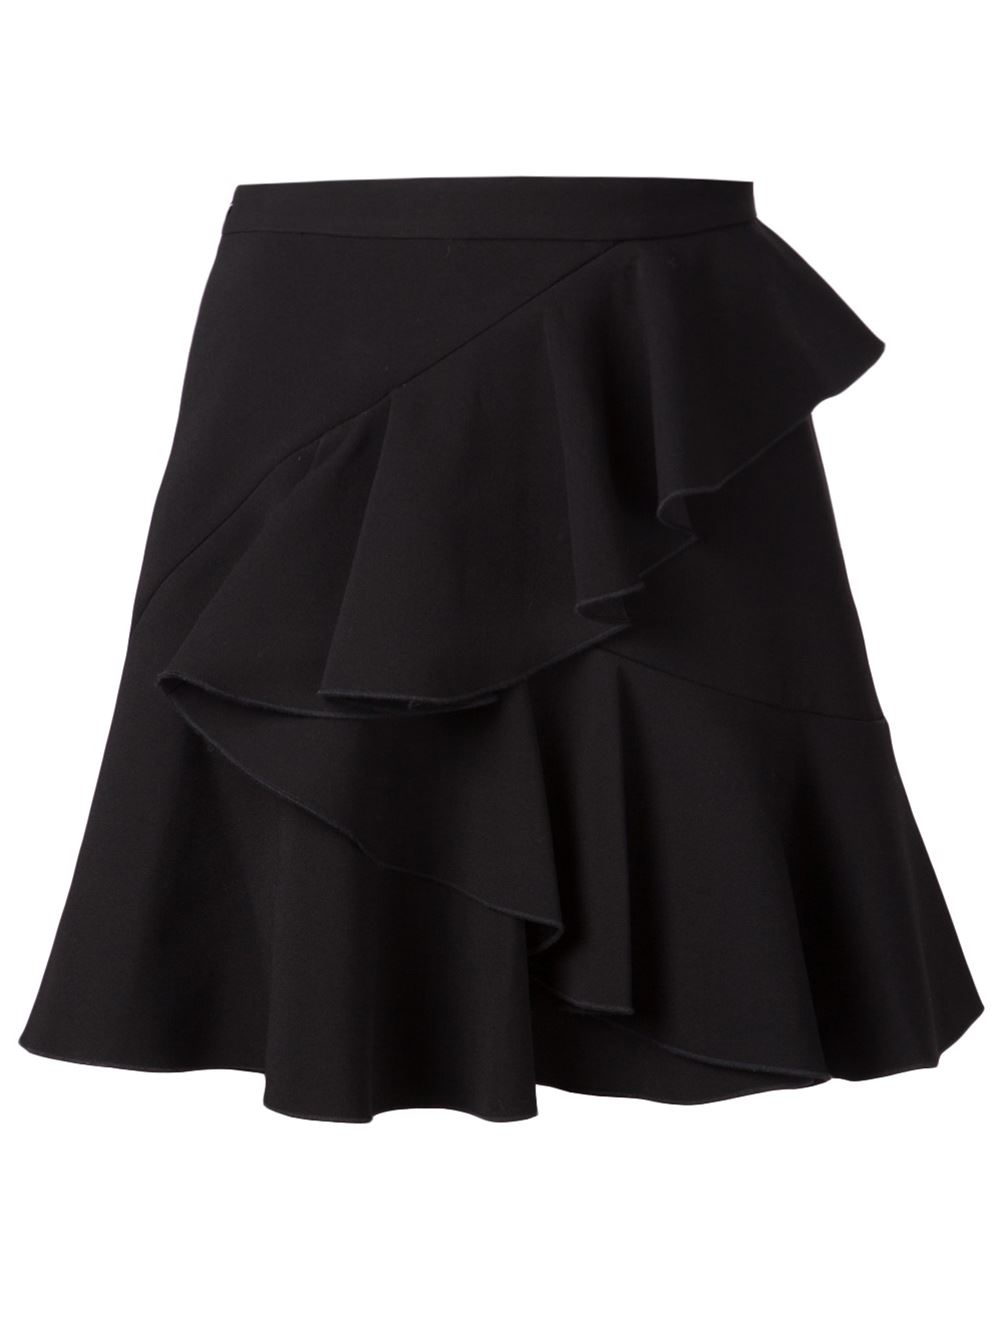 Black Ruffle Skirts. Clothing. Women. Black Ruffle Skirts. Showing 48 of results that match your query. Product - CLIPS Women's Black Belted Ruffle Front Straight Skirt IT Sz 44 NWT. Product Image. Price $ Product Title. CLIPS Women's Black Belted Ruffle Front Straight Skirt .